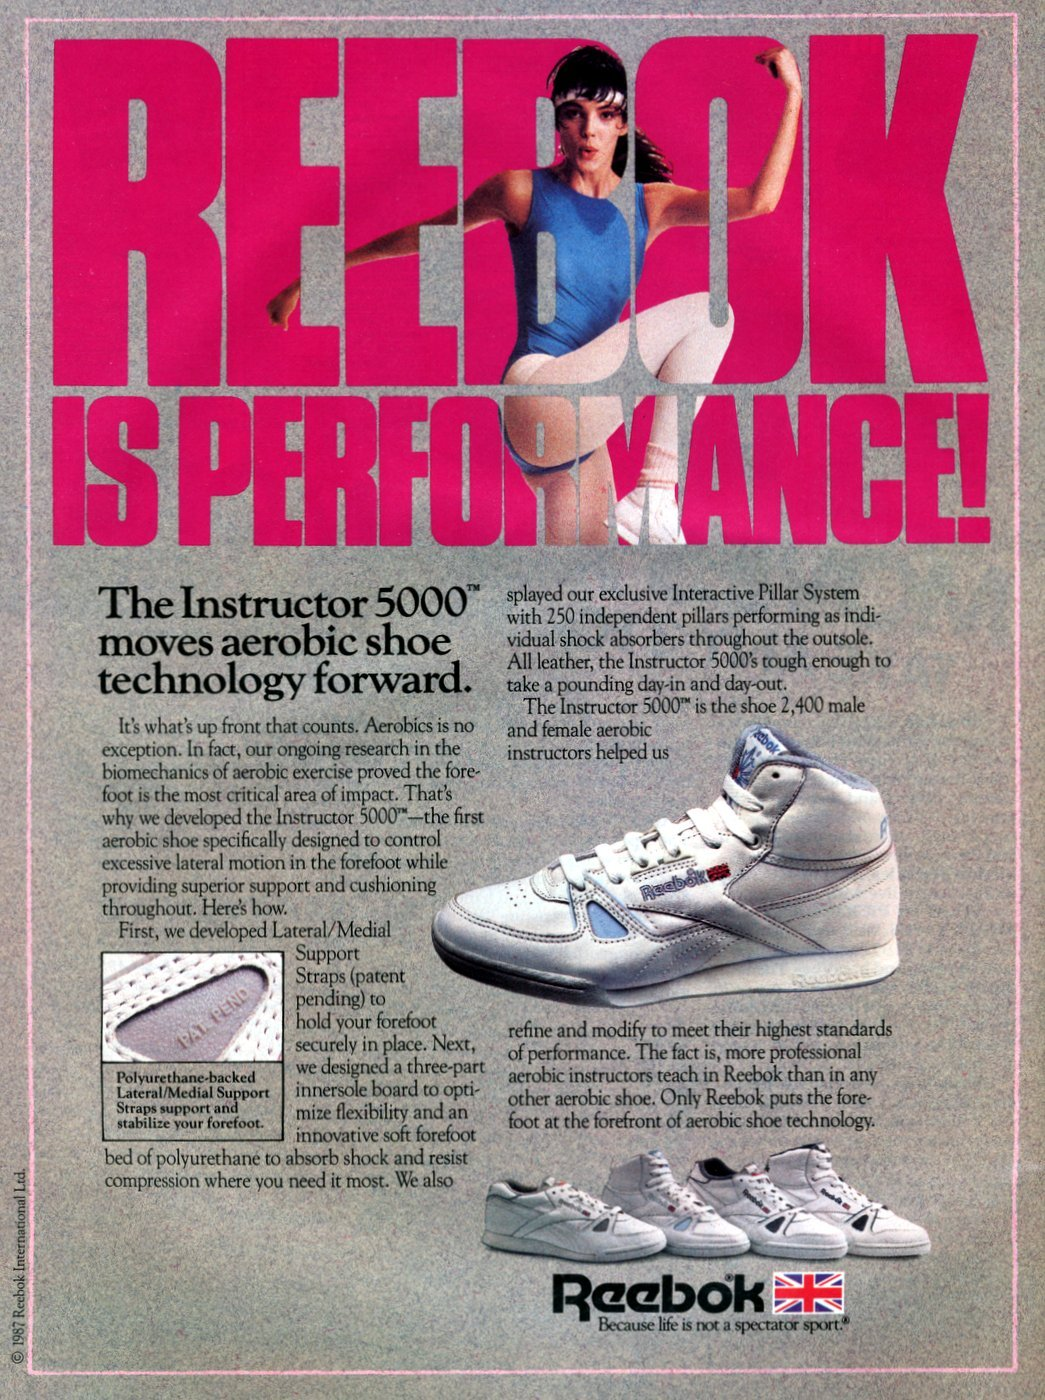 Reebok workout shoes - sneakers from 1987